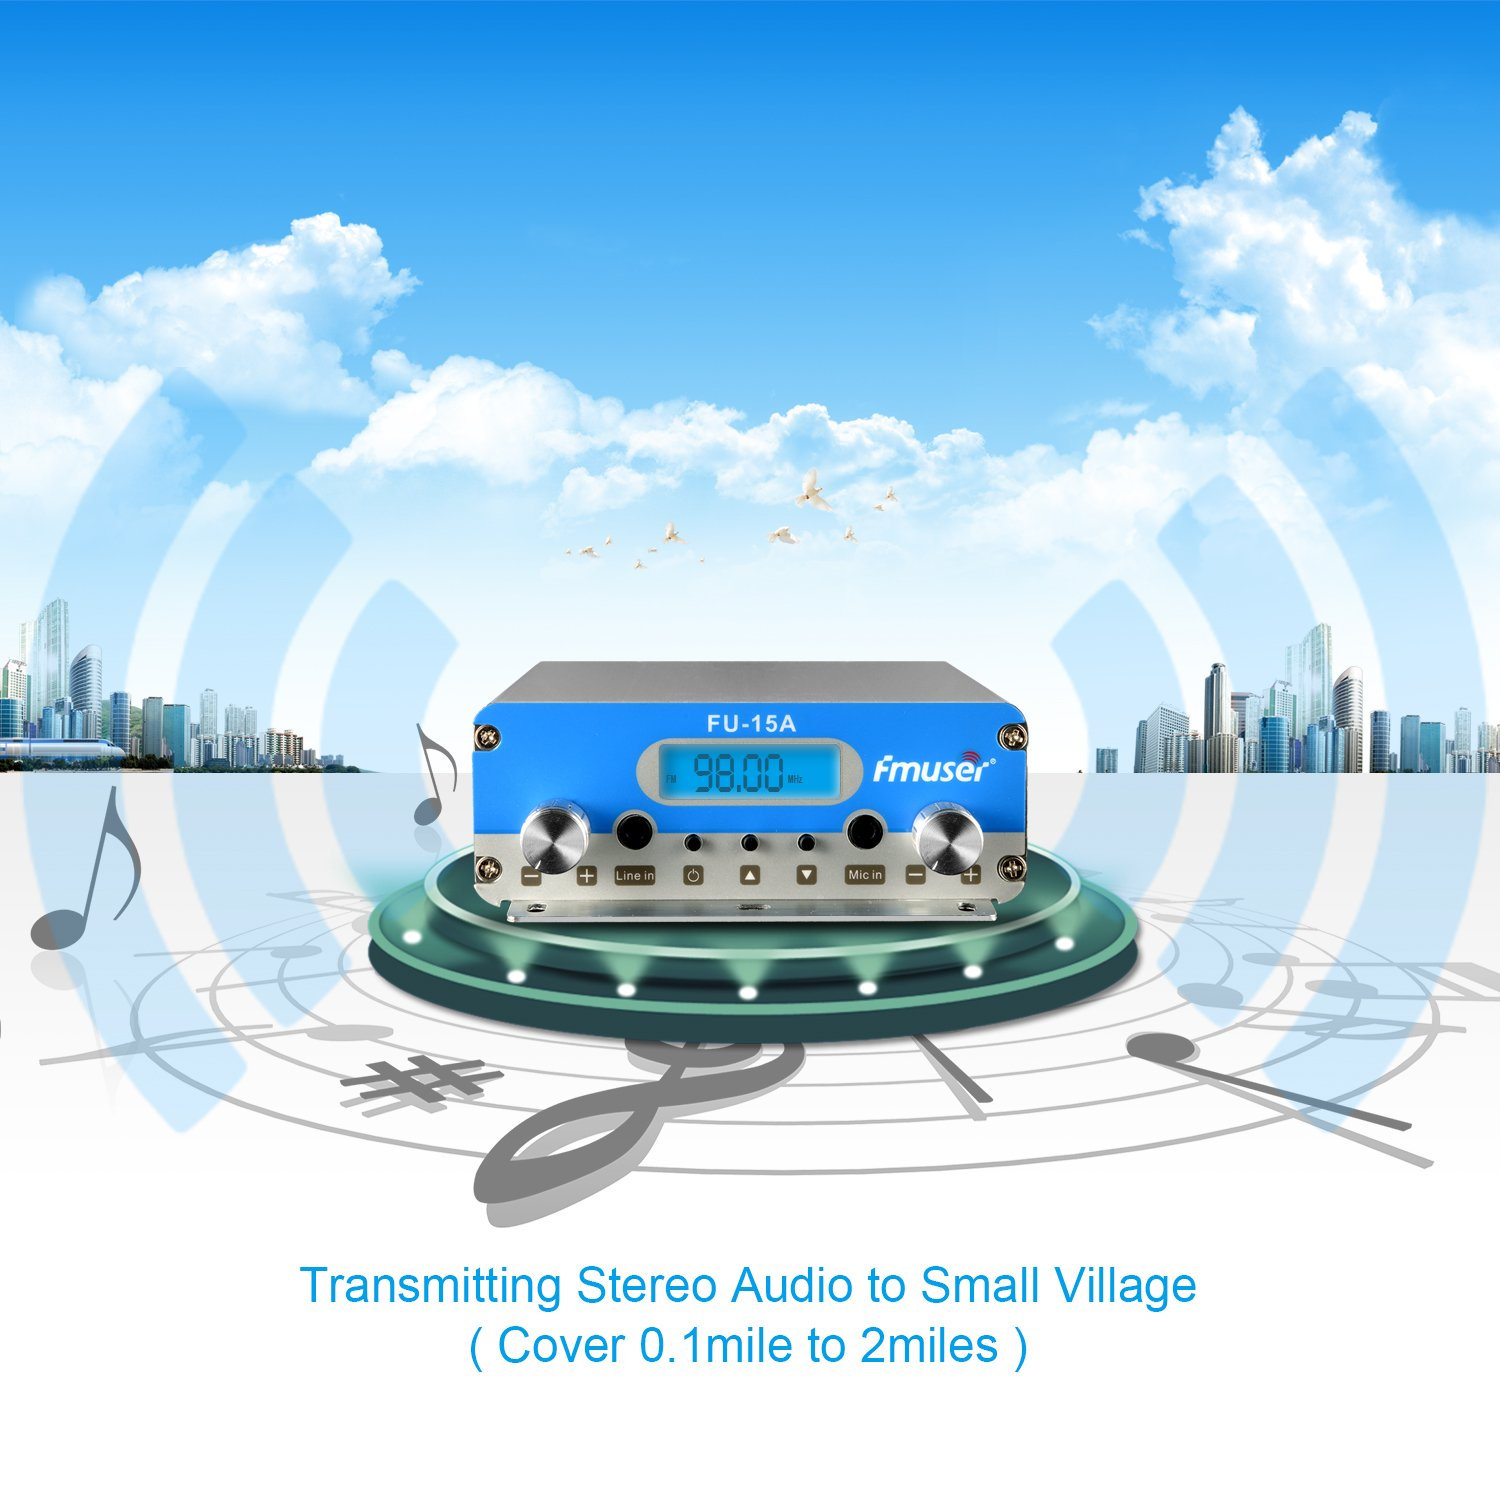 T15b 5w/15w Output Power Transmitter Fm Stereo Audio Broadcasting For Personal Broadcasting Radio & Tv Broadcast Equipments